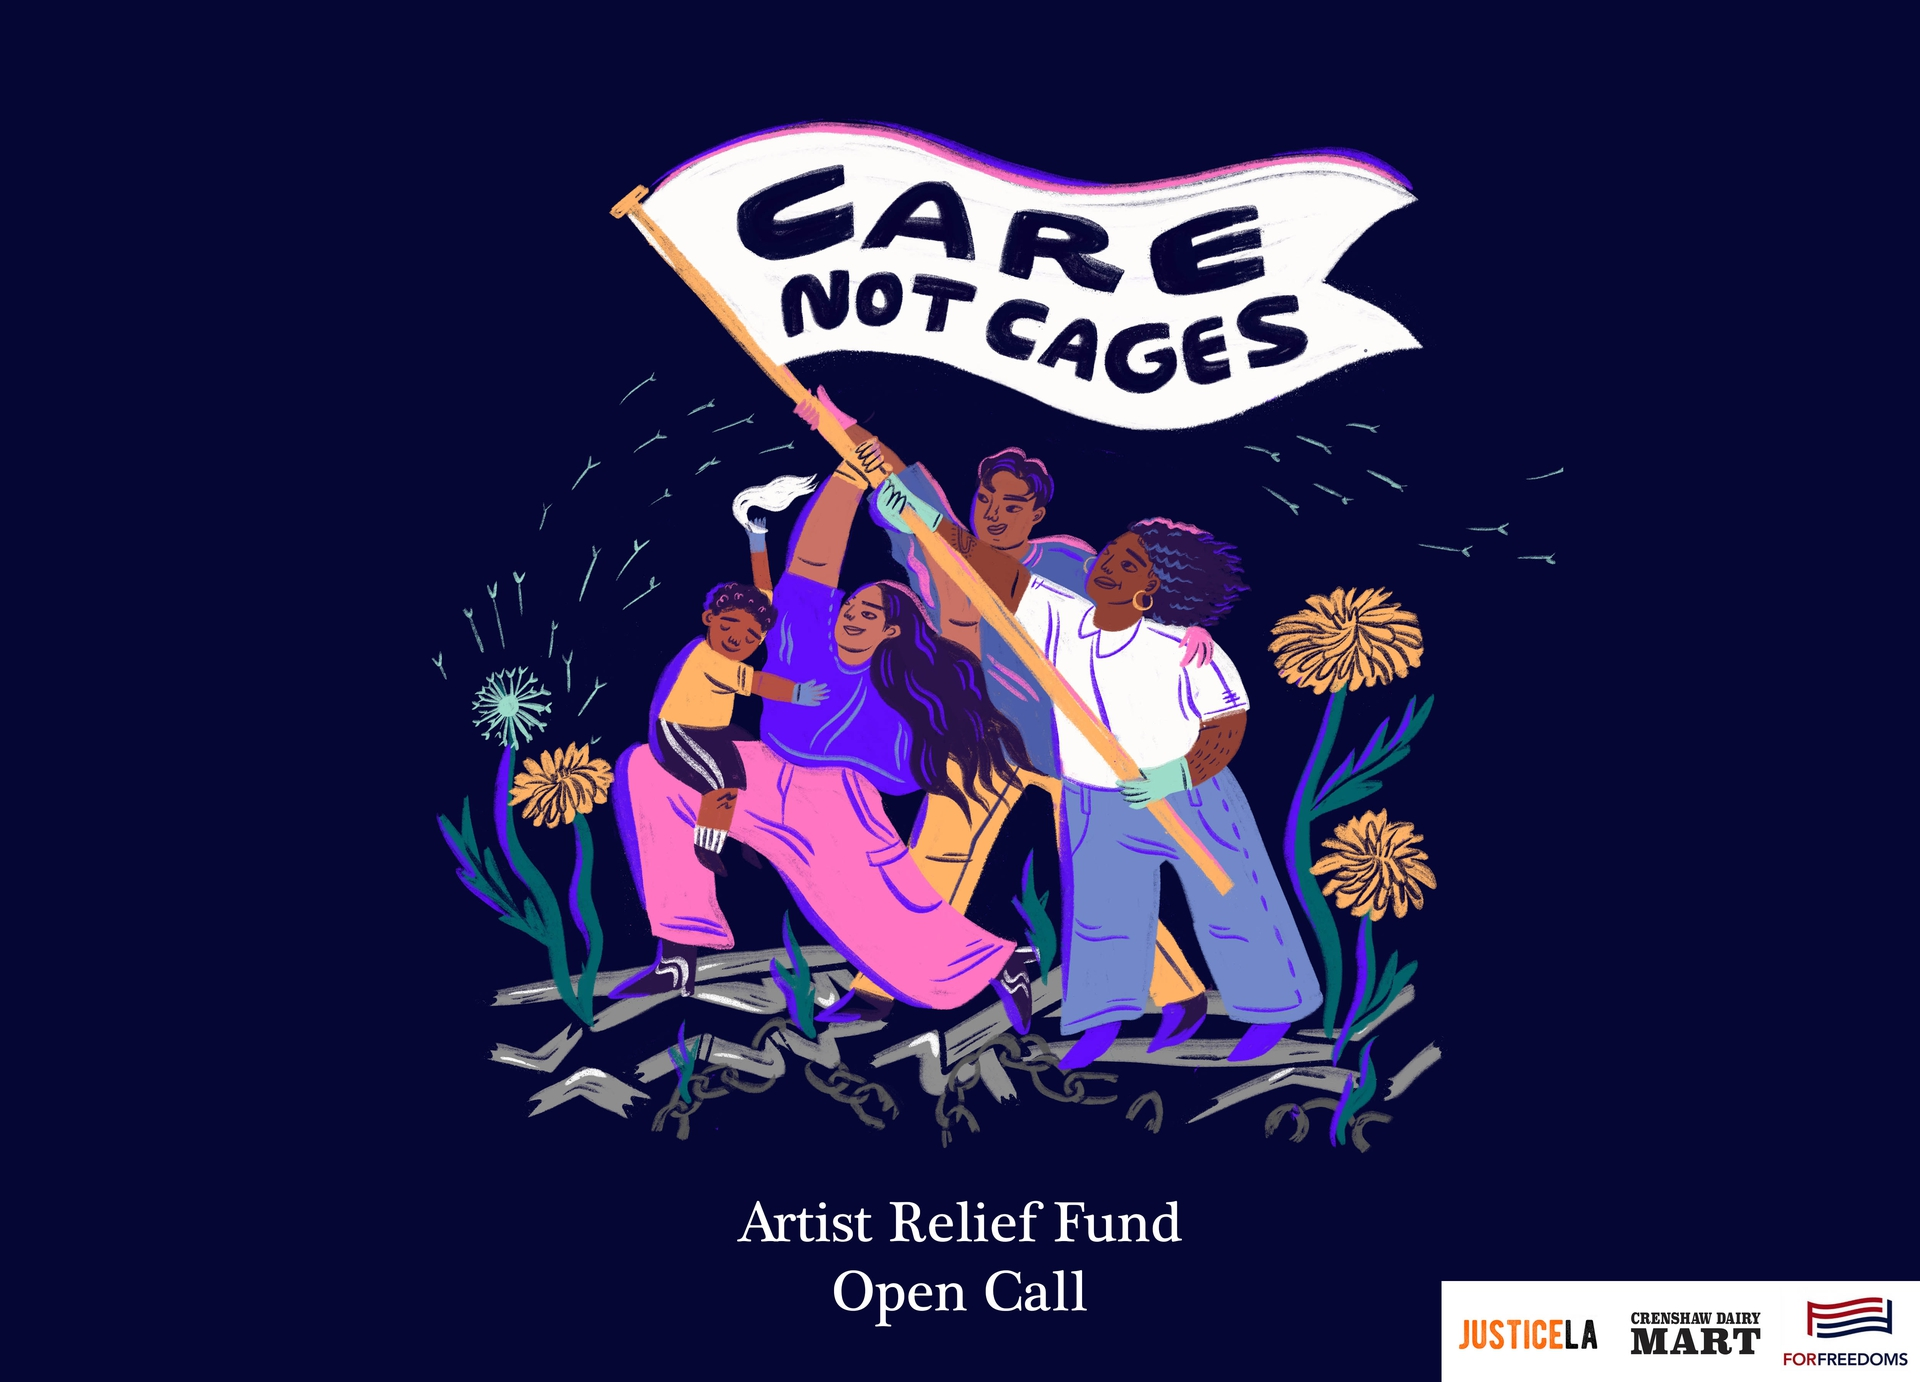 Care Not Cages Winners